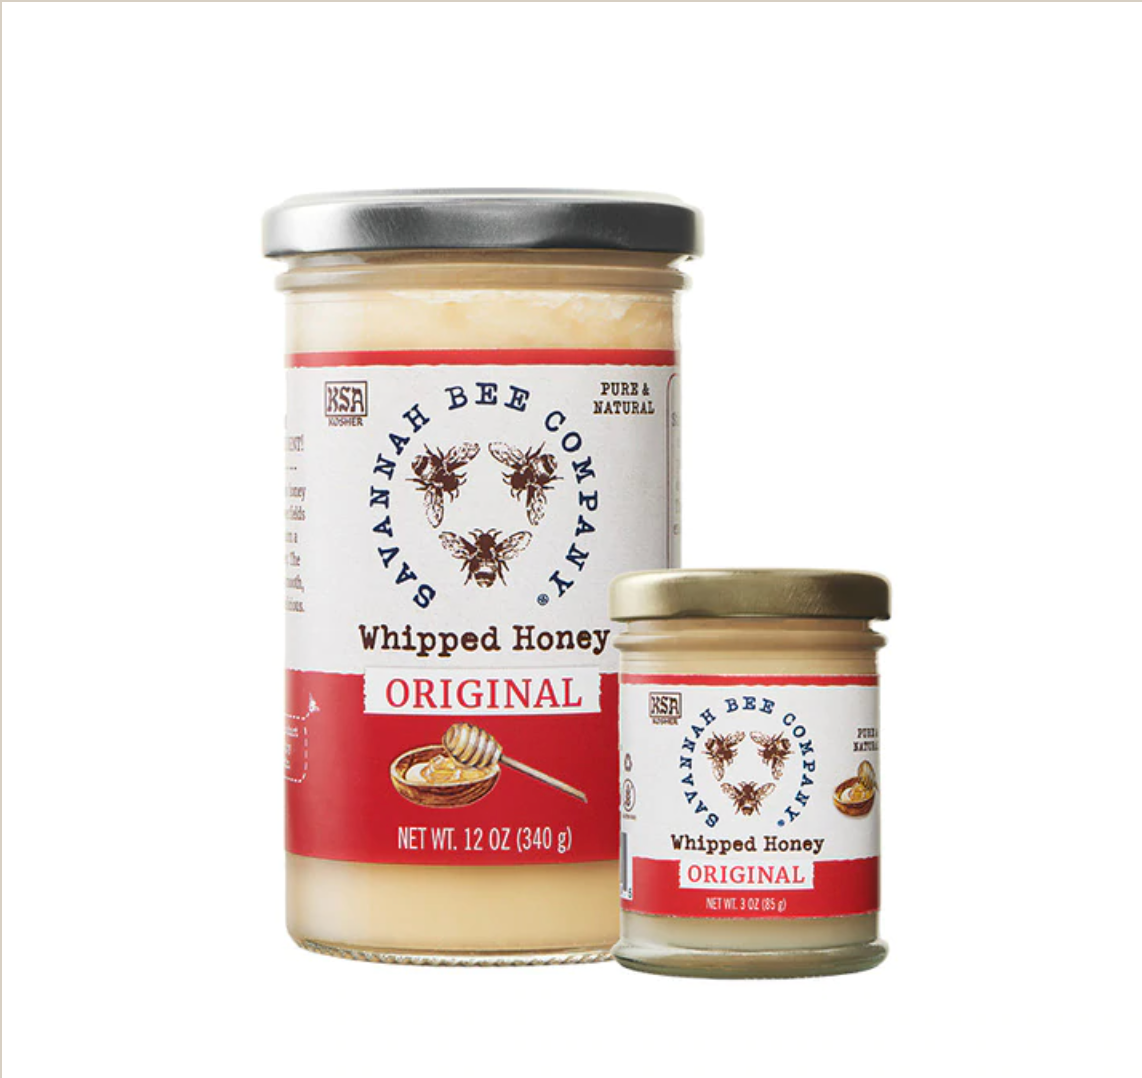 Original Whipped Honey 12 oz